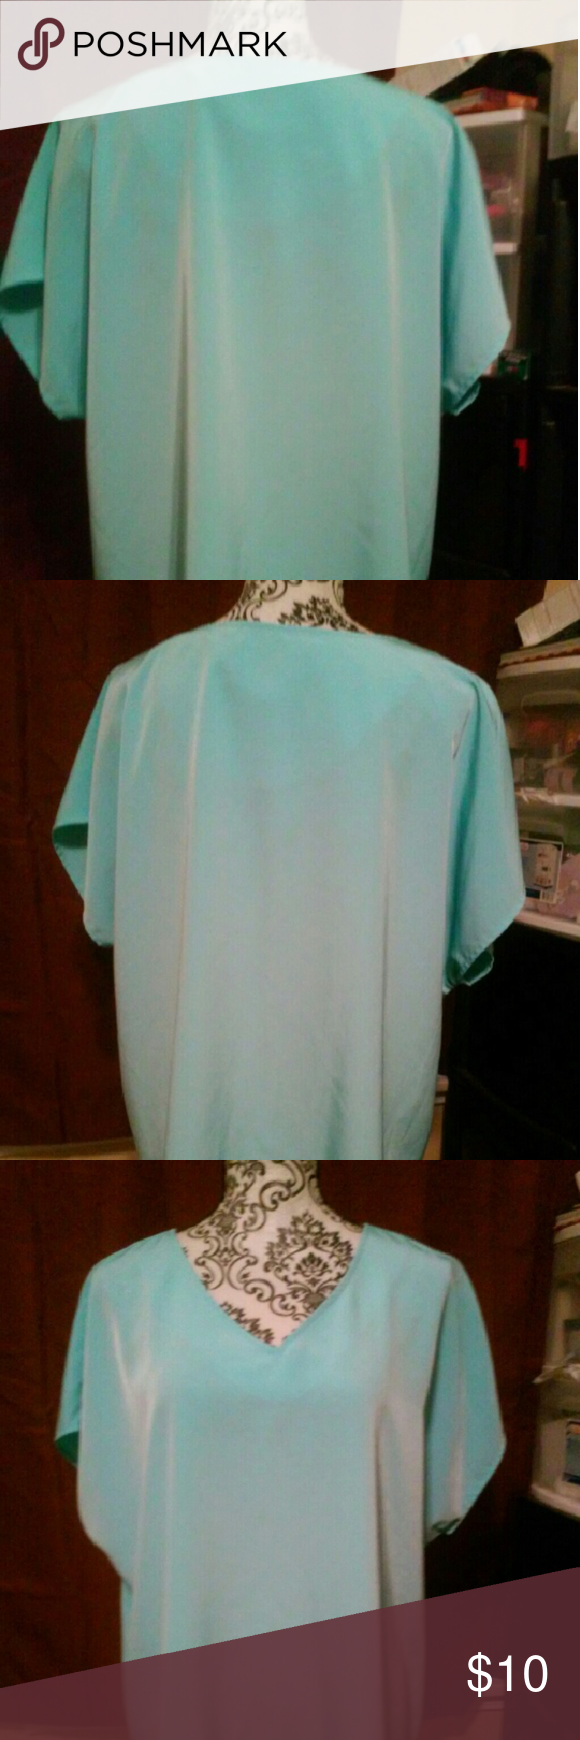 Maggie sweet 1x aqua blouse Like new aqua 1x faux suede looking excellent by maggie swet maggie sweets  Tops Blouses